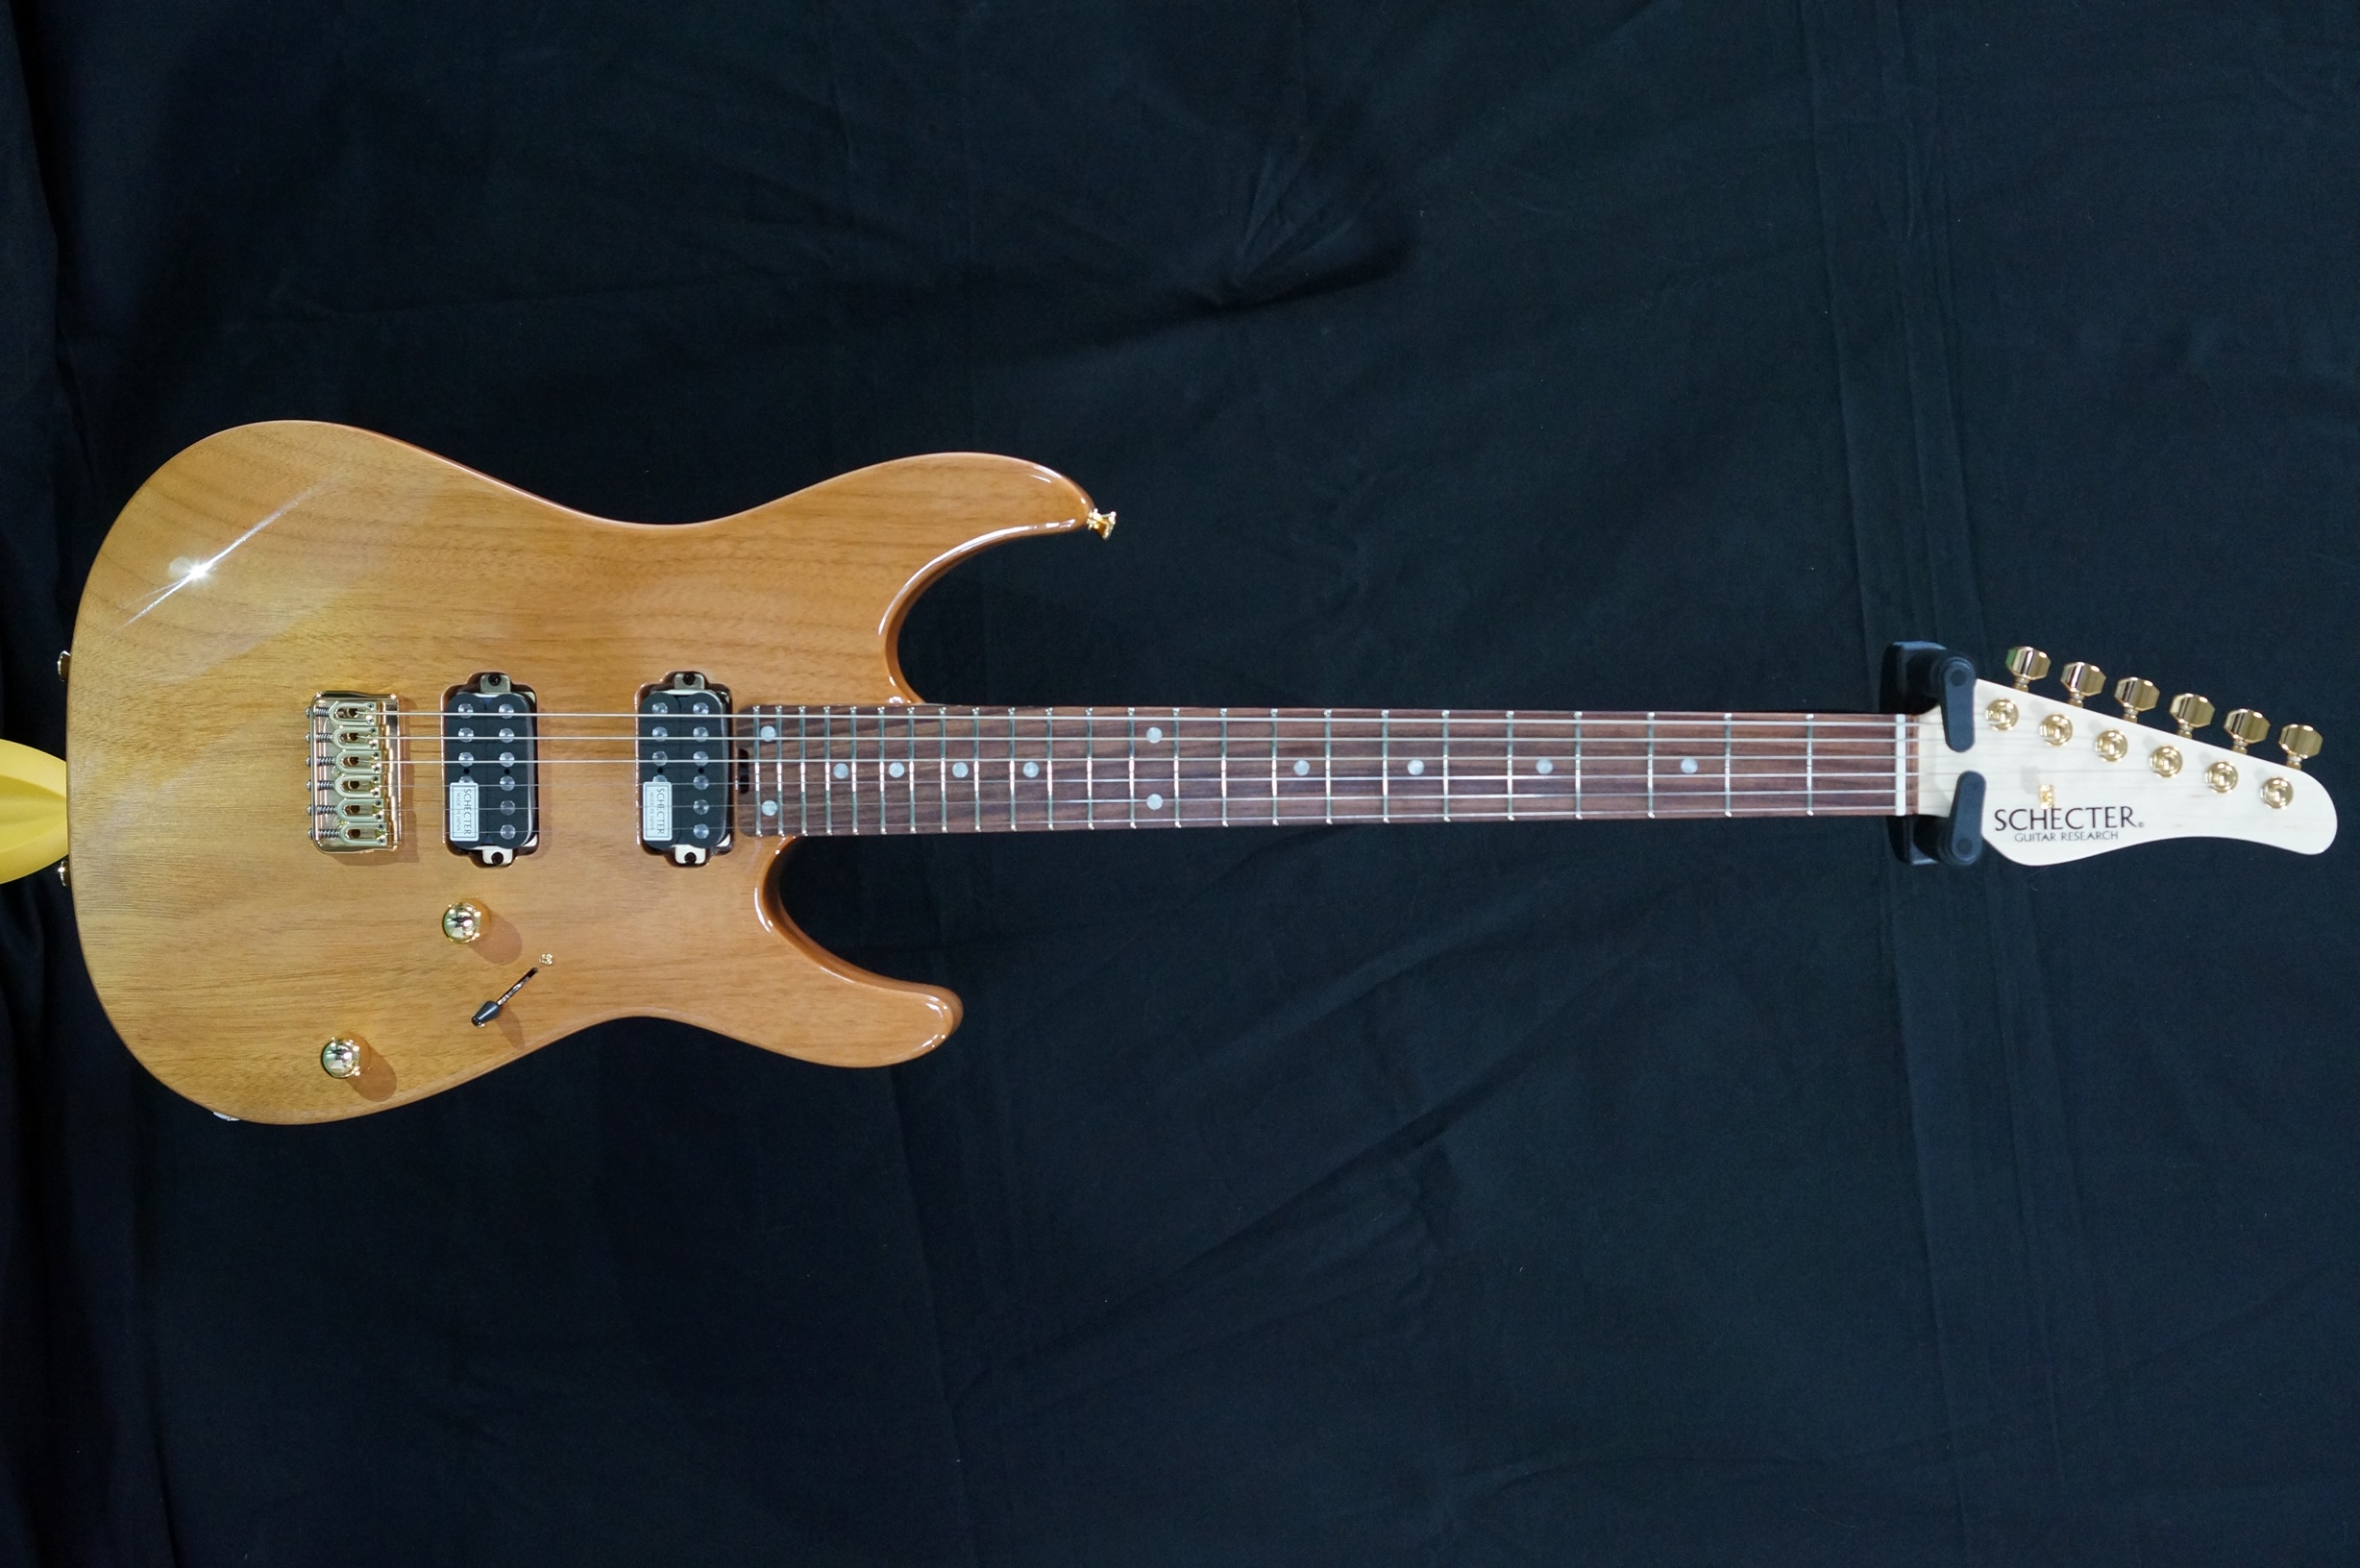 SCHECTER NV-4-24-MH-W